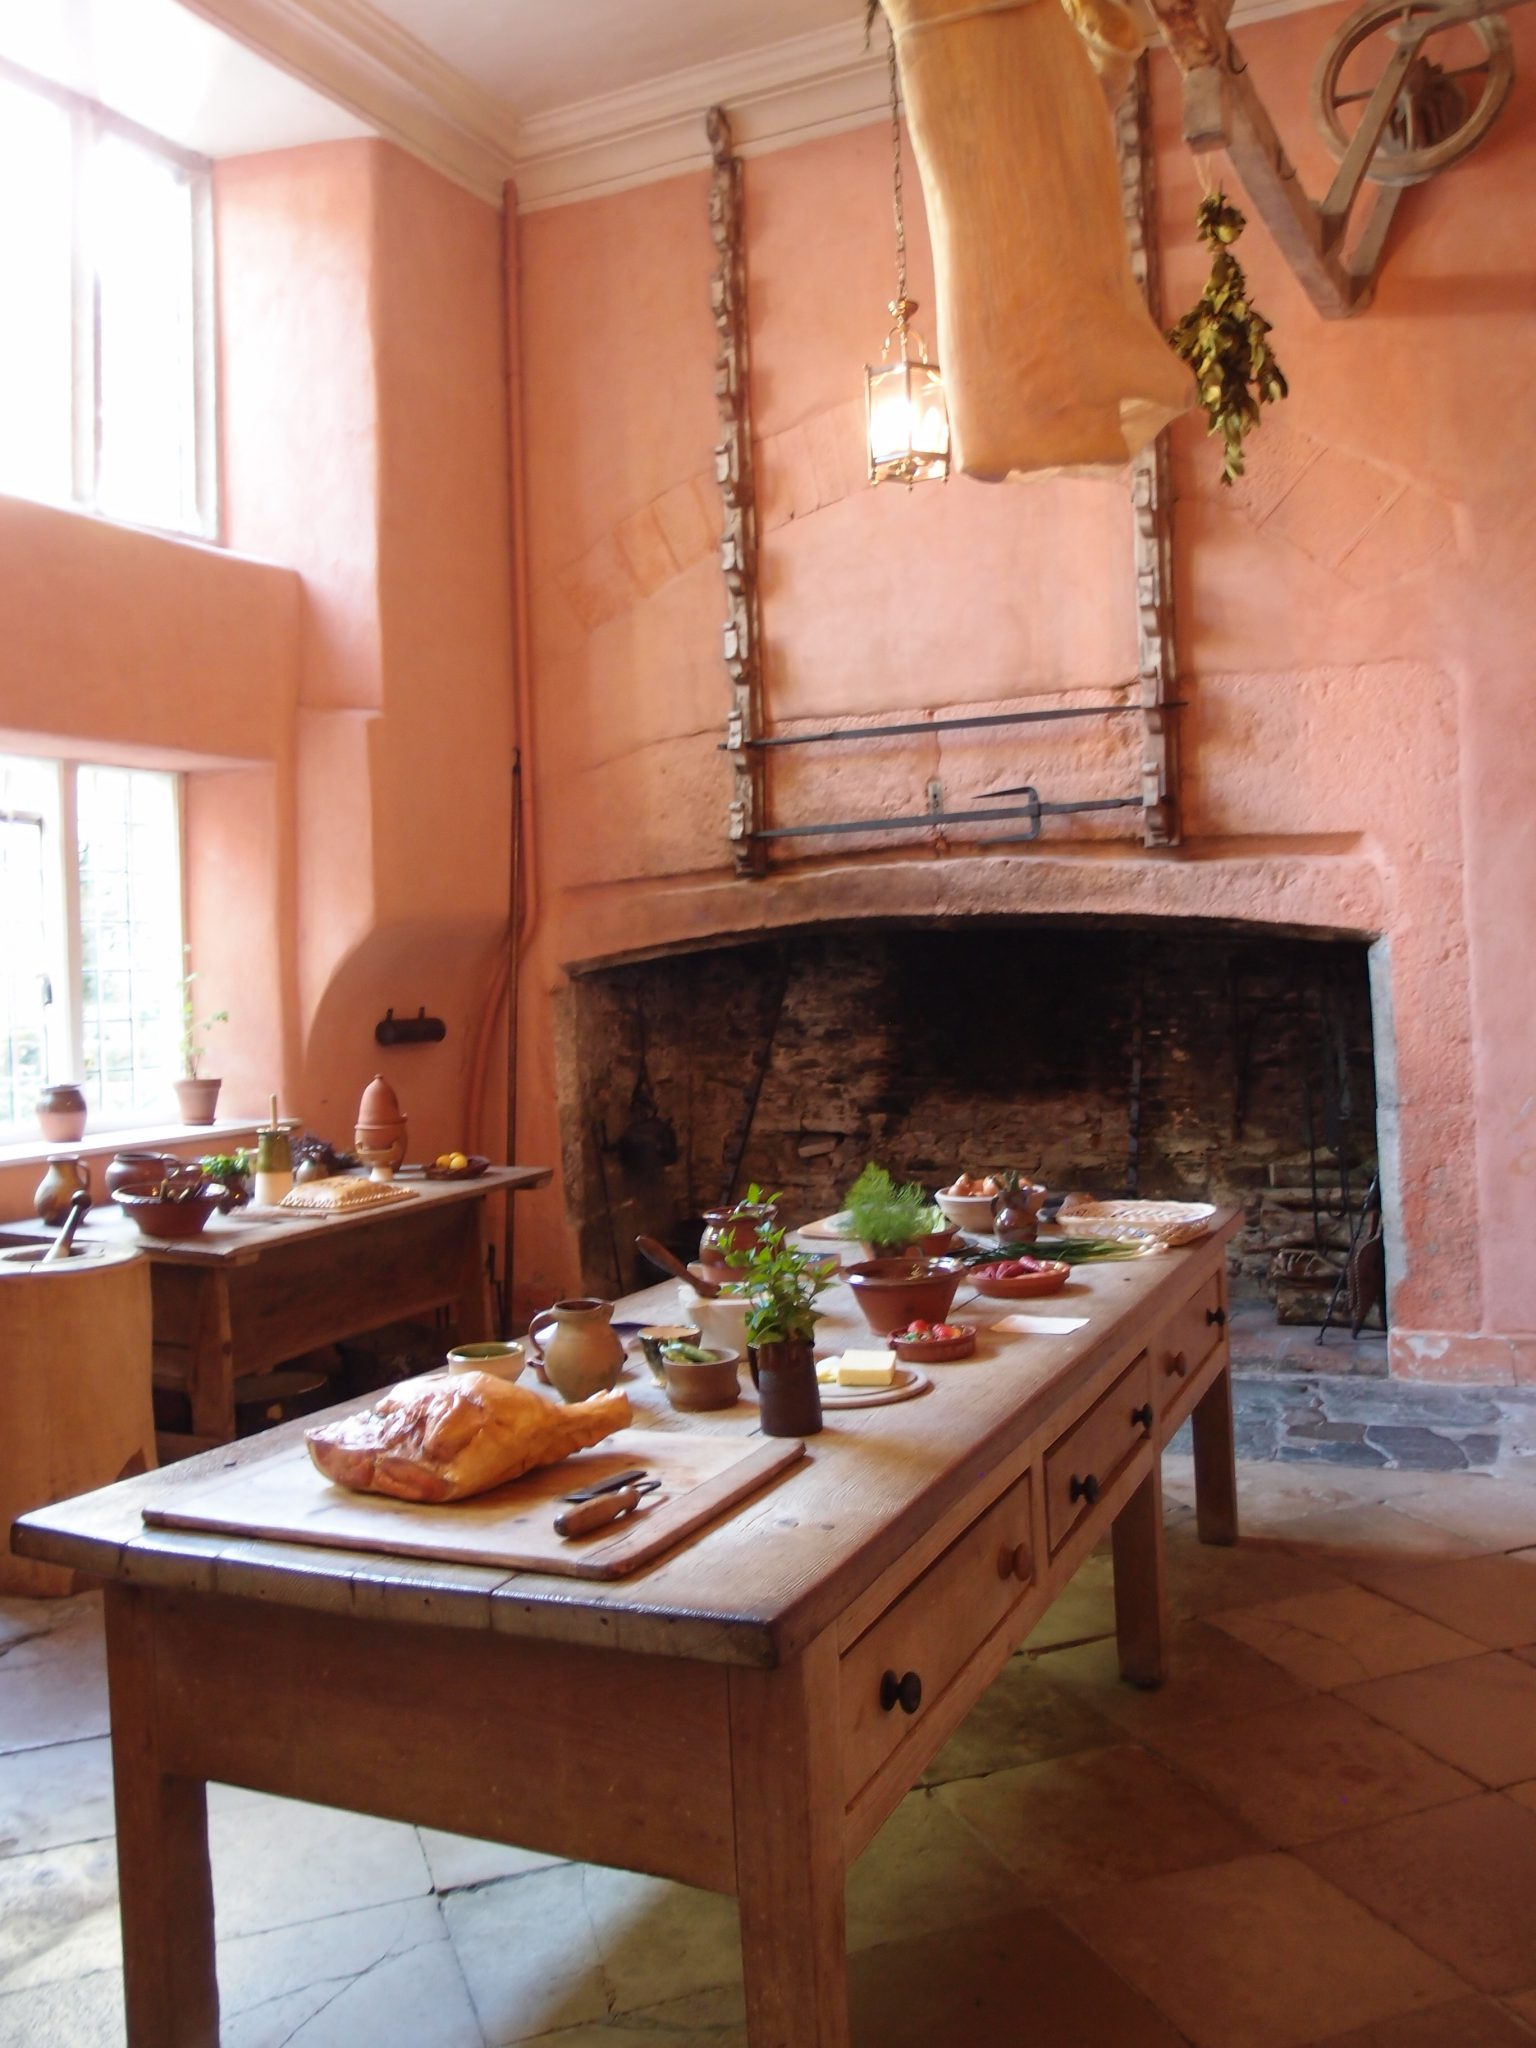 The Kitchen is in the Abbey's east wing, and was built by Sir Richard Grenville to absorb the monastic chancel. Two open Hearths dominate the room.